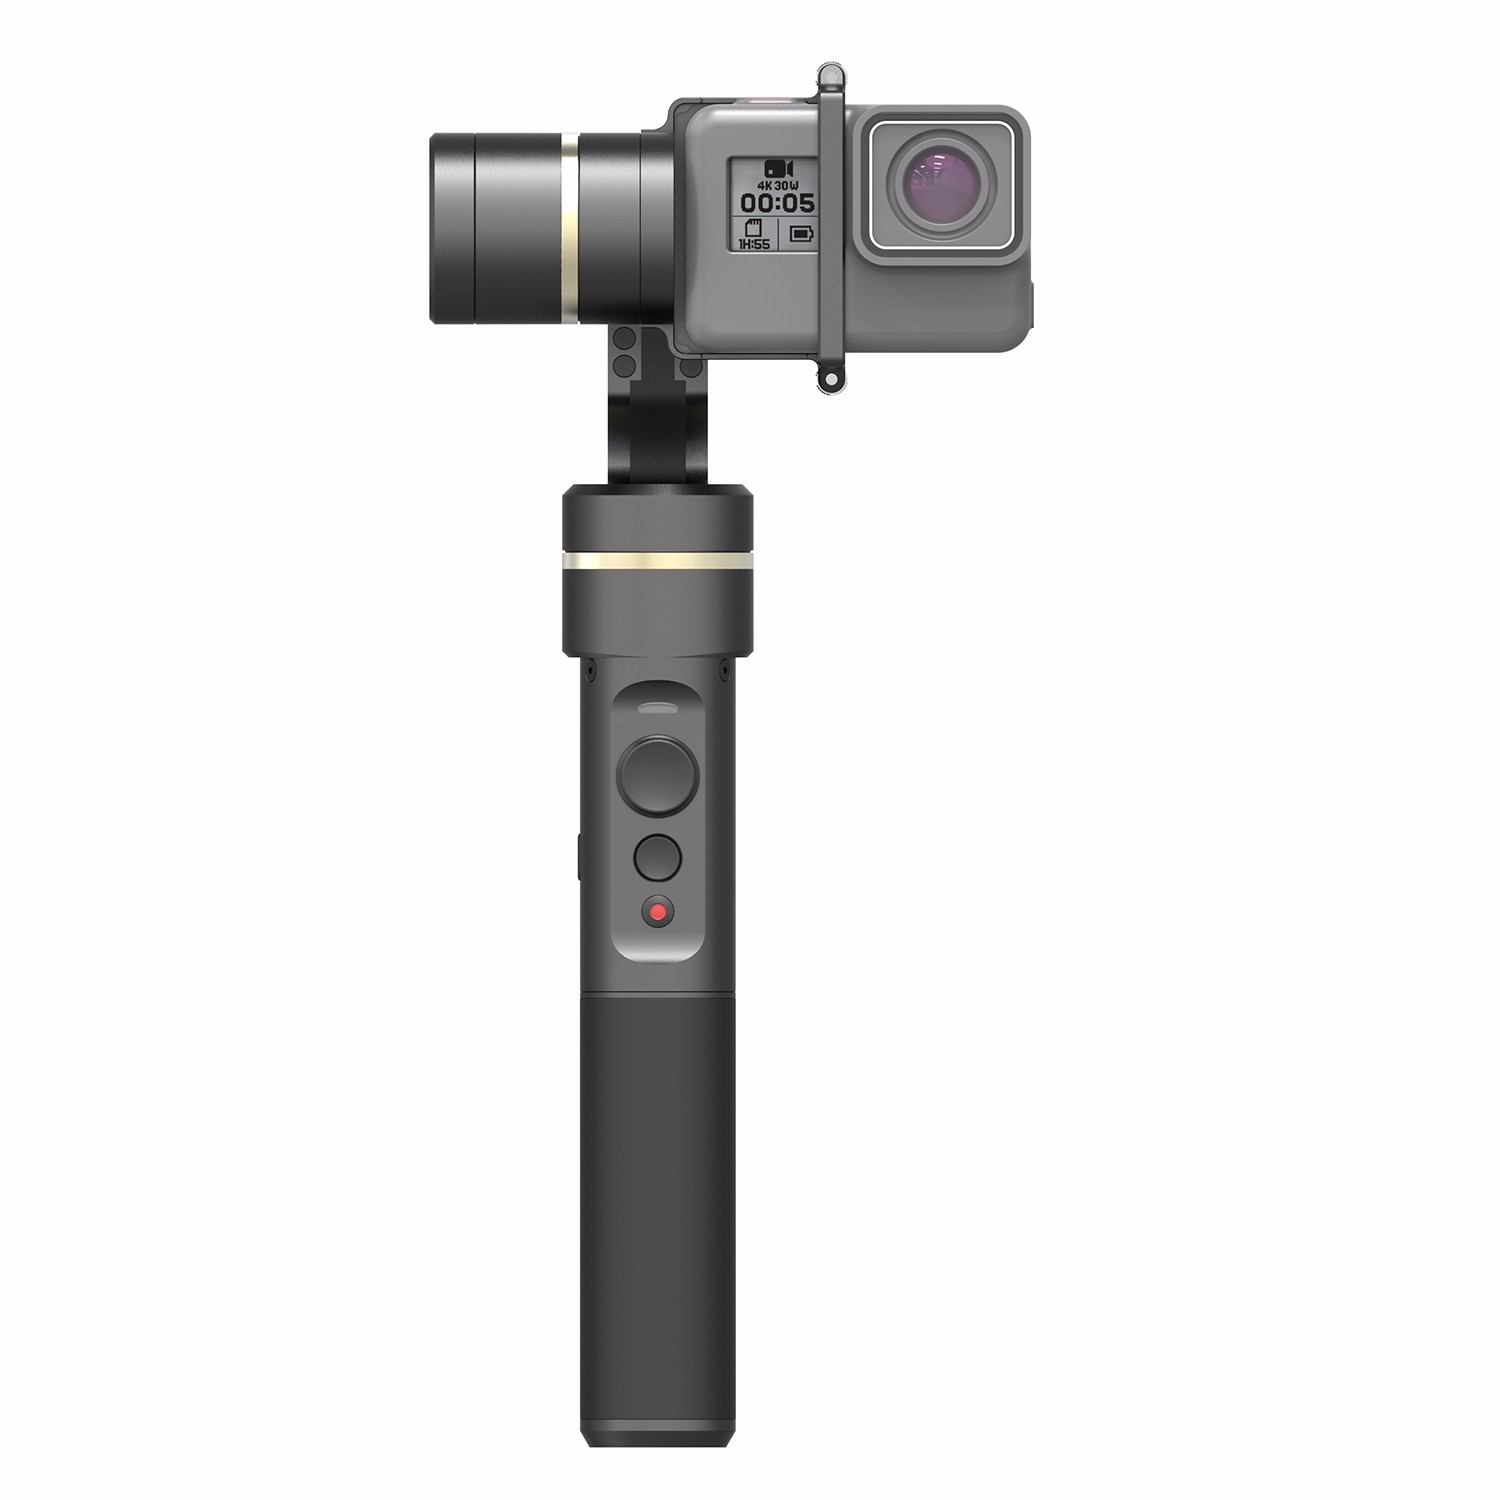 цена на Feiyu G5 fy g5 3-Axis Splash-Proof Handheld Gimbal for GoPro HERO5 HERO 5 4 3+ 3 feiyu g4 g4s update version